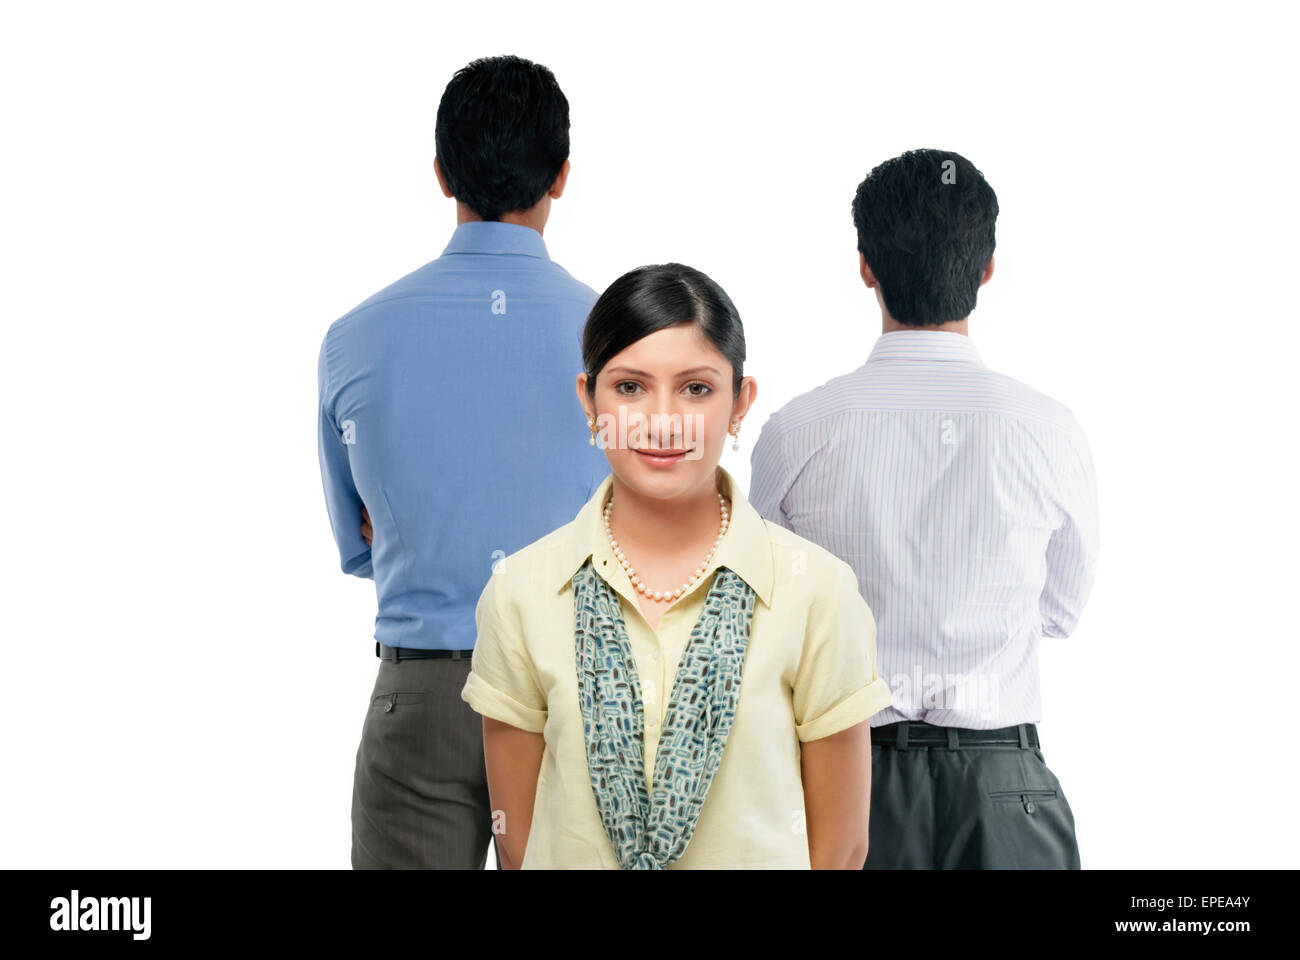 One businesswoman looking in front and two businessmen standing with their backs in front - Stock Image